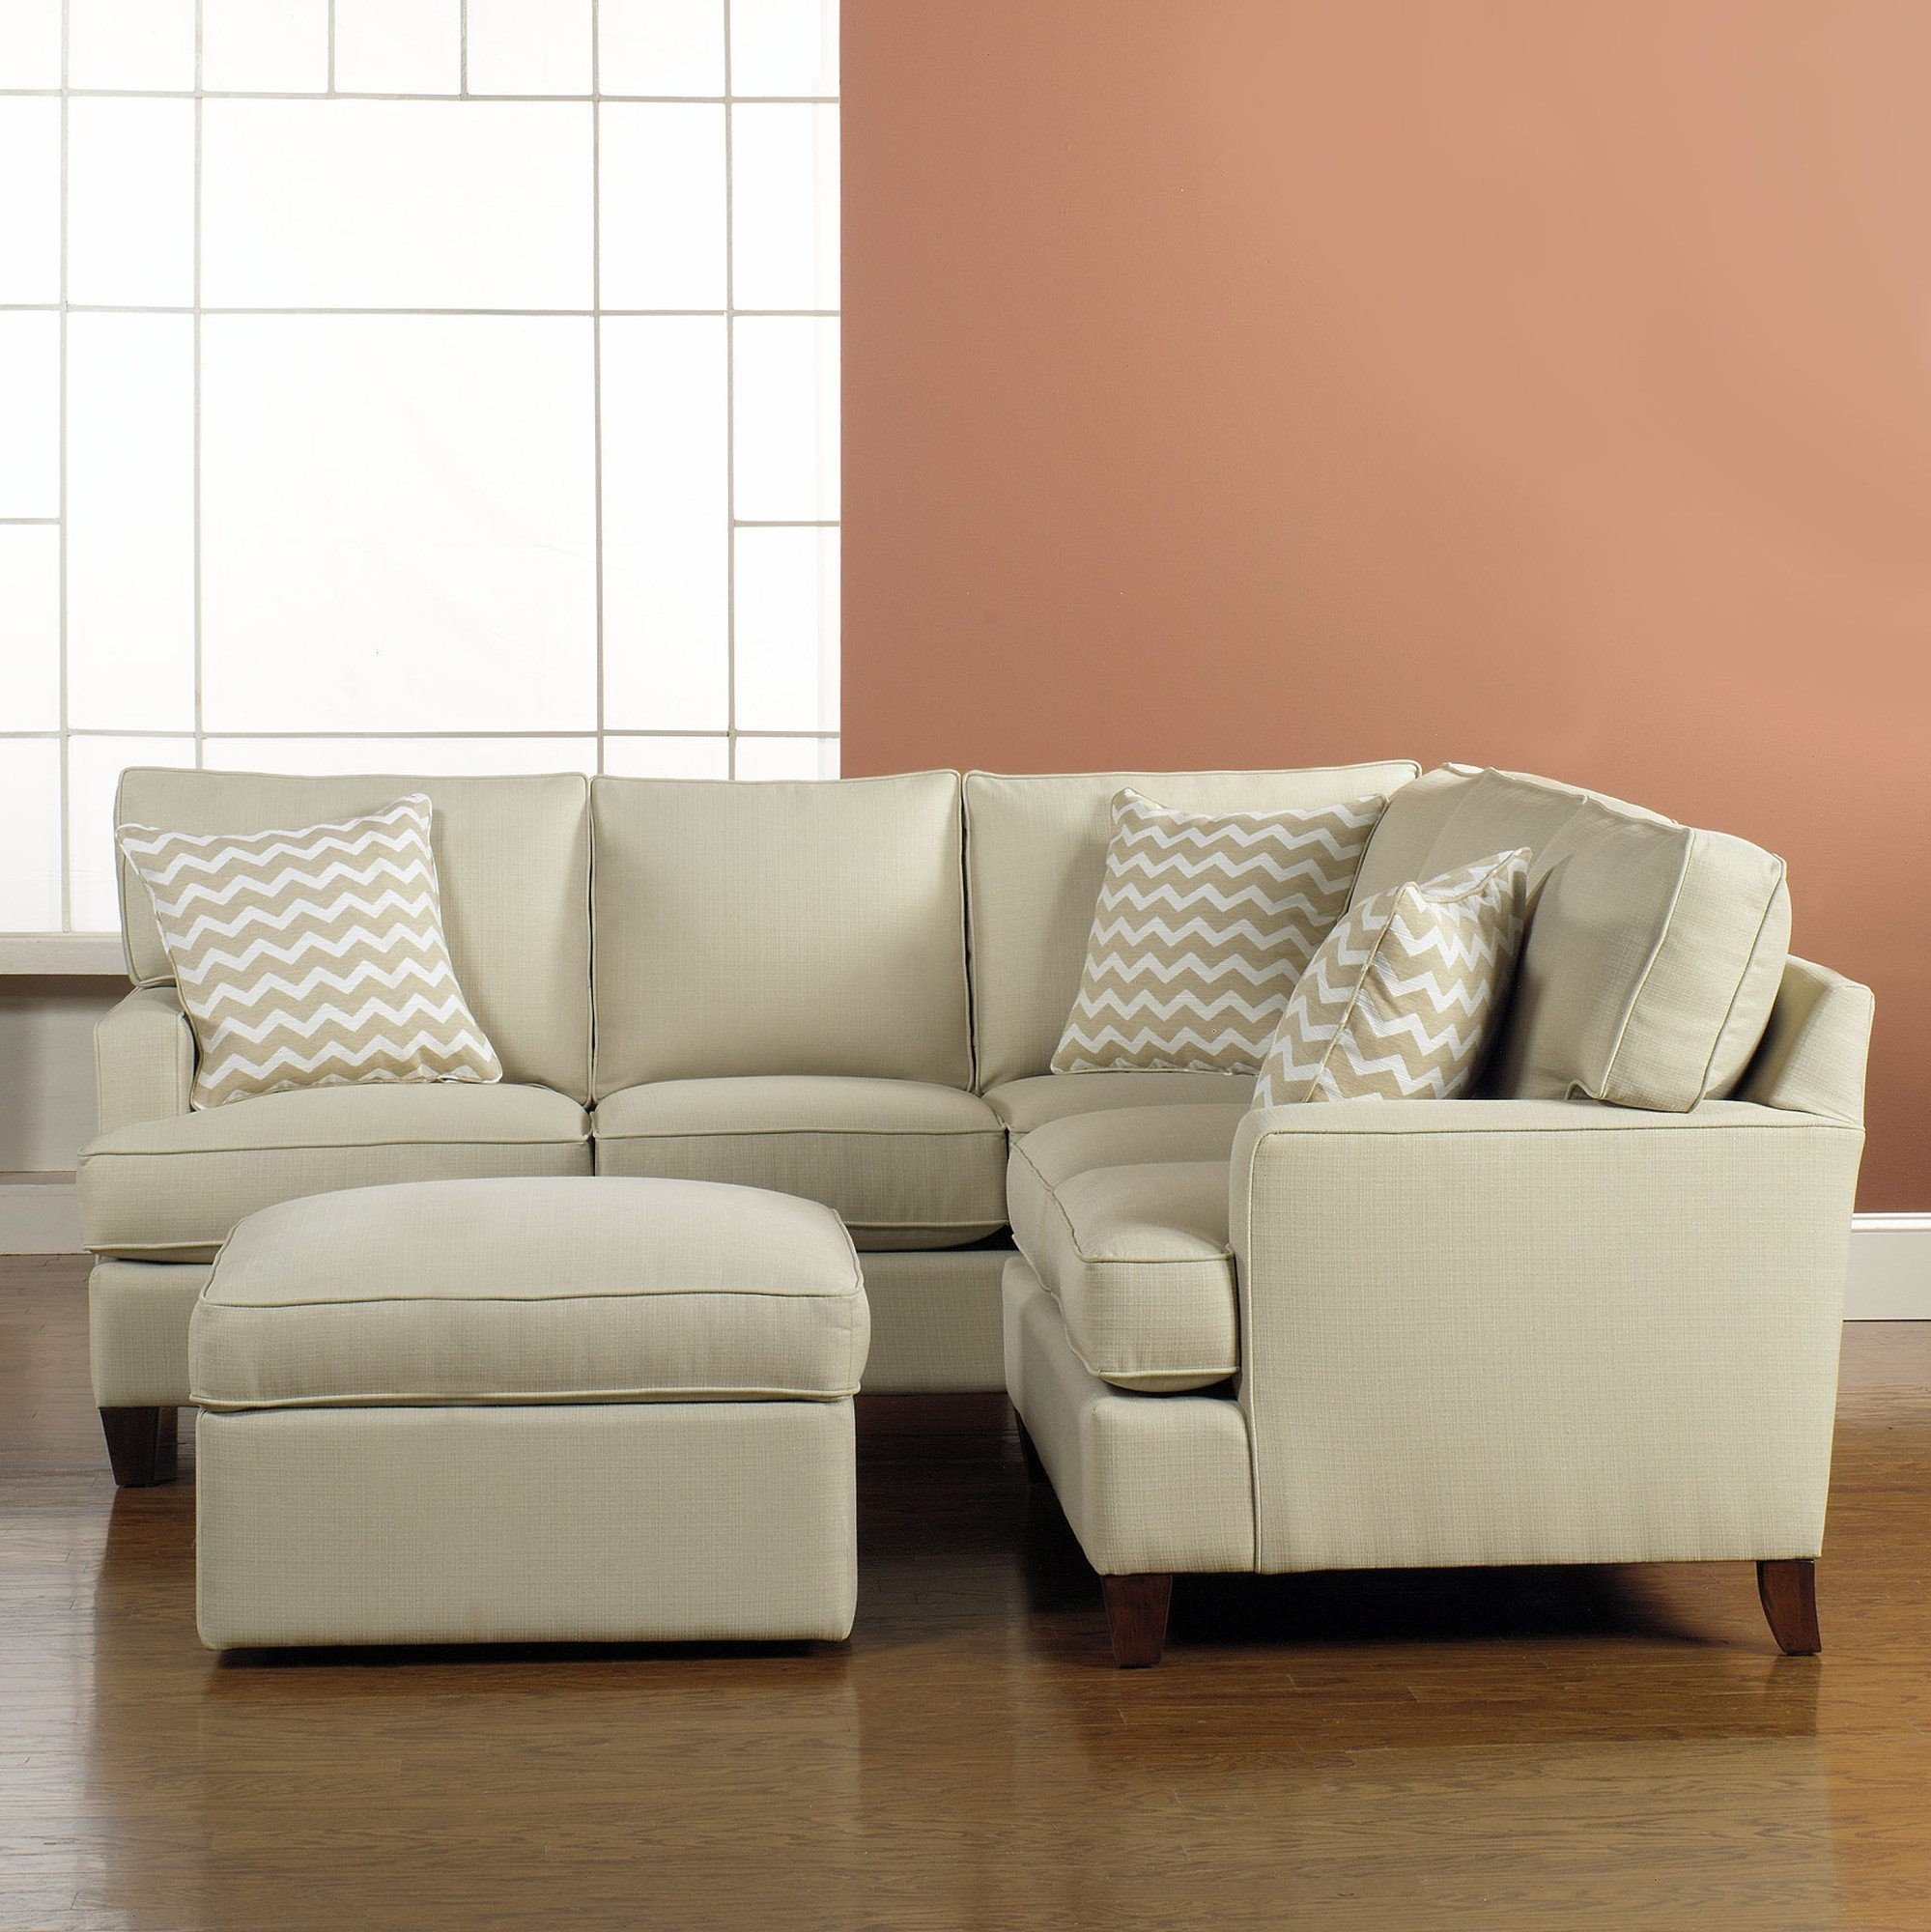 Elegant Sectional Sofas For Small Spaces Construction